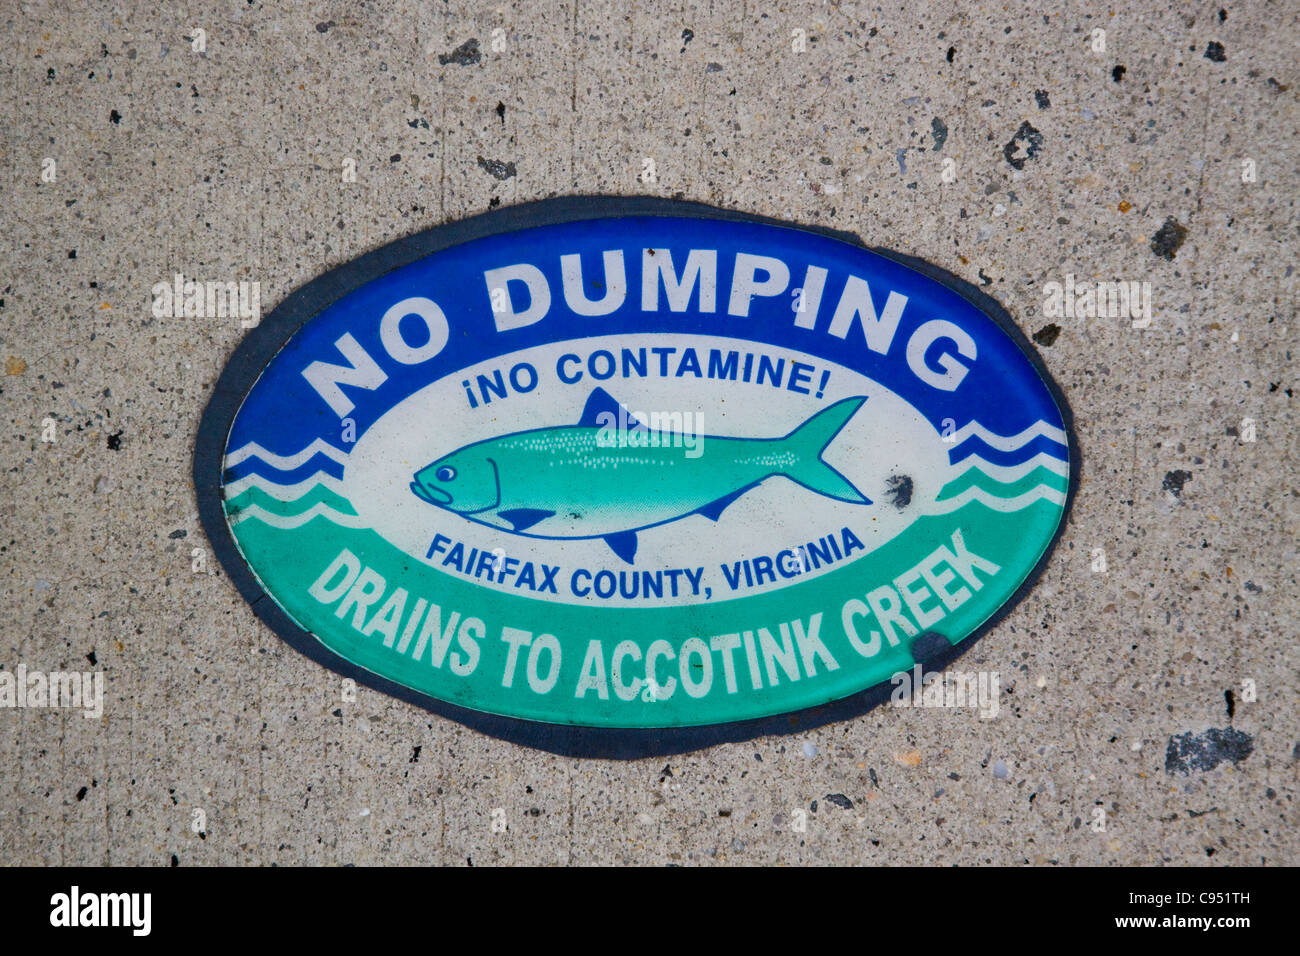 Fairfax County Virginia No Dumping Drains to Accotink Creek sign on top of a storm water drainage catch basin inlet - Stock Image